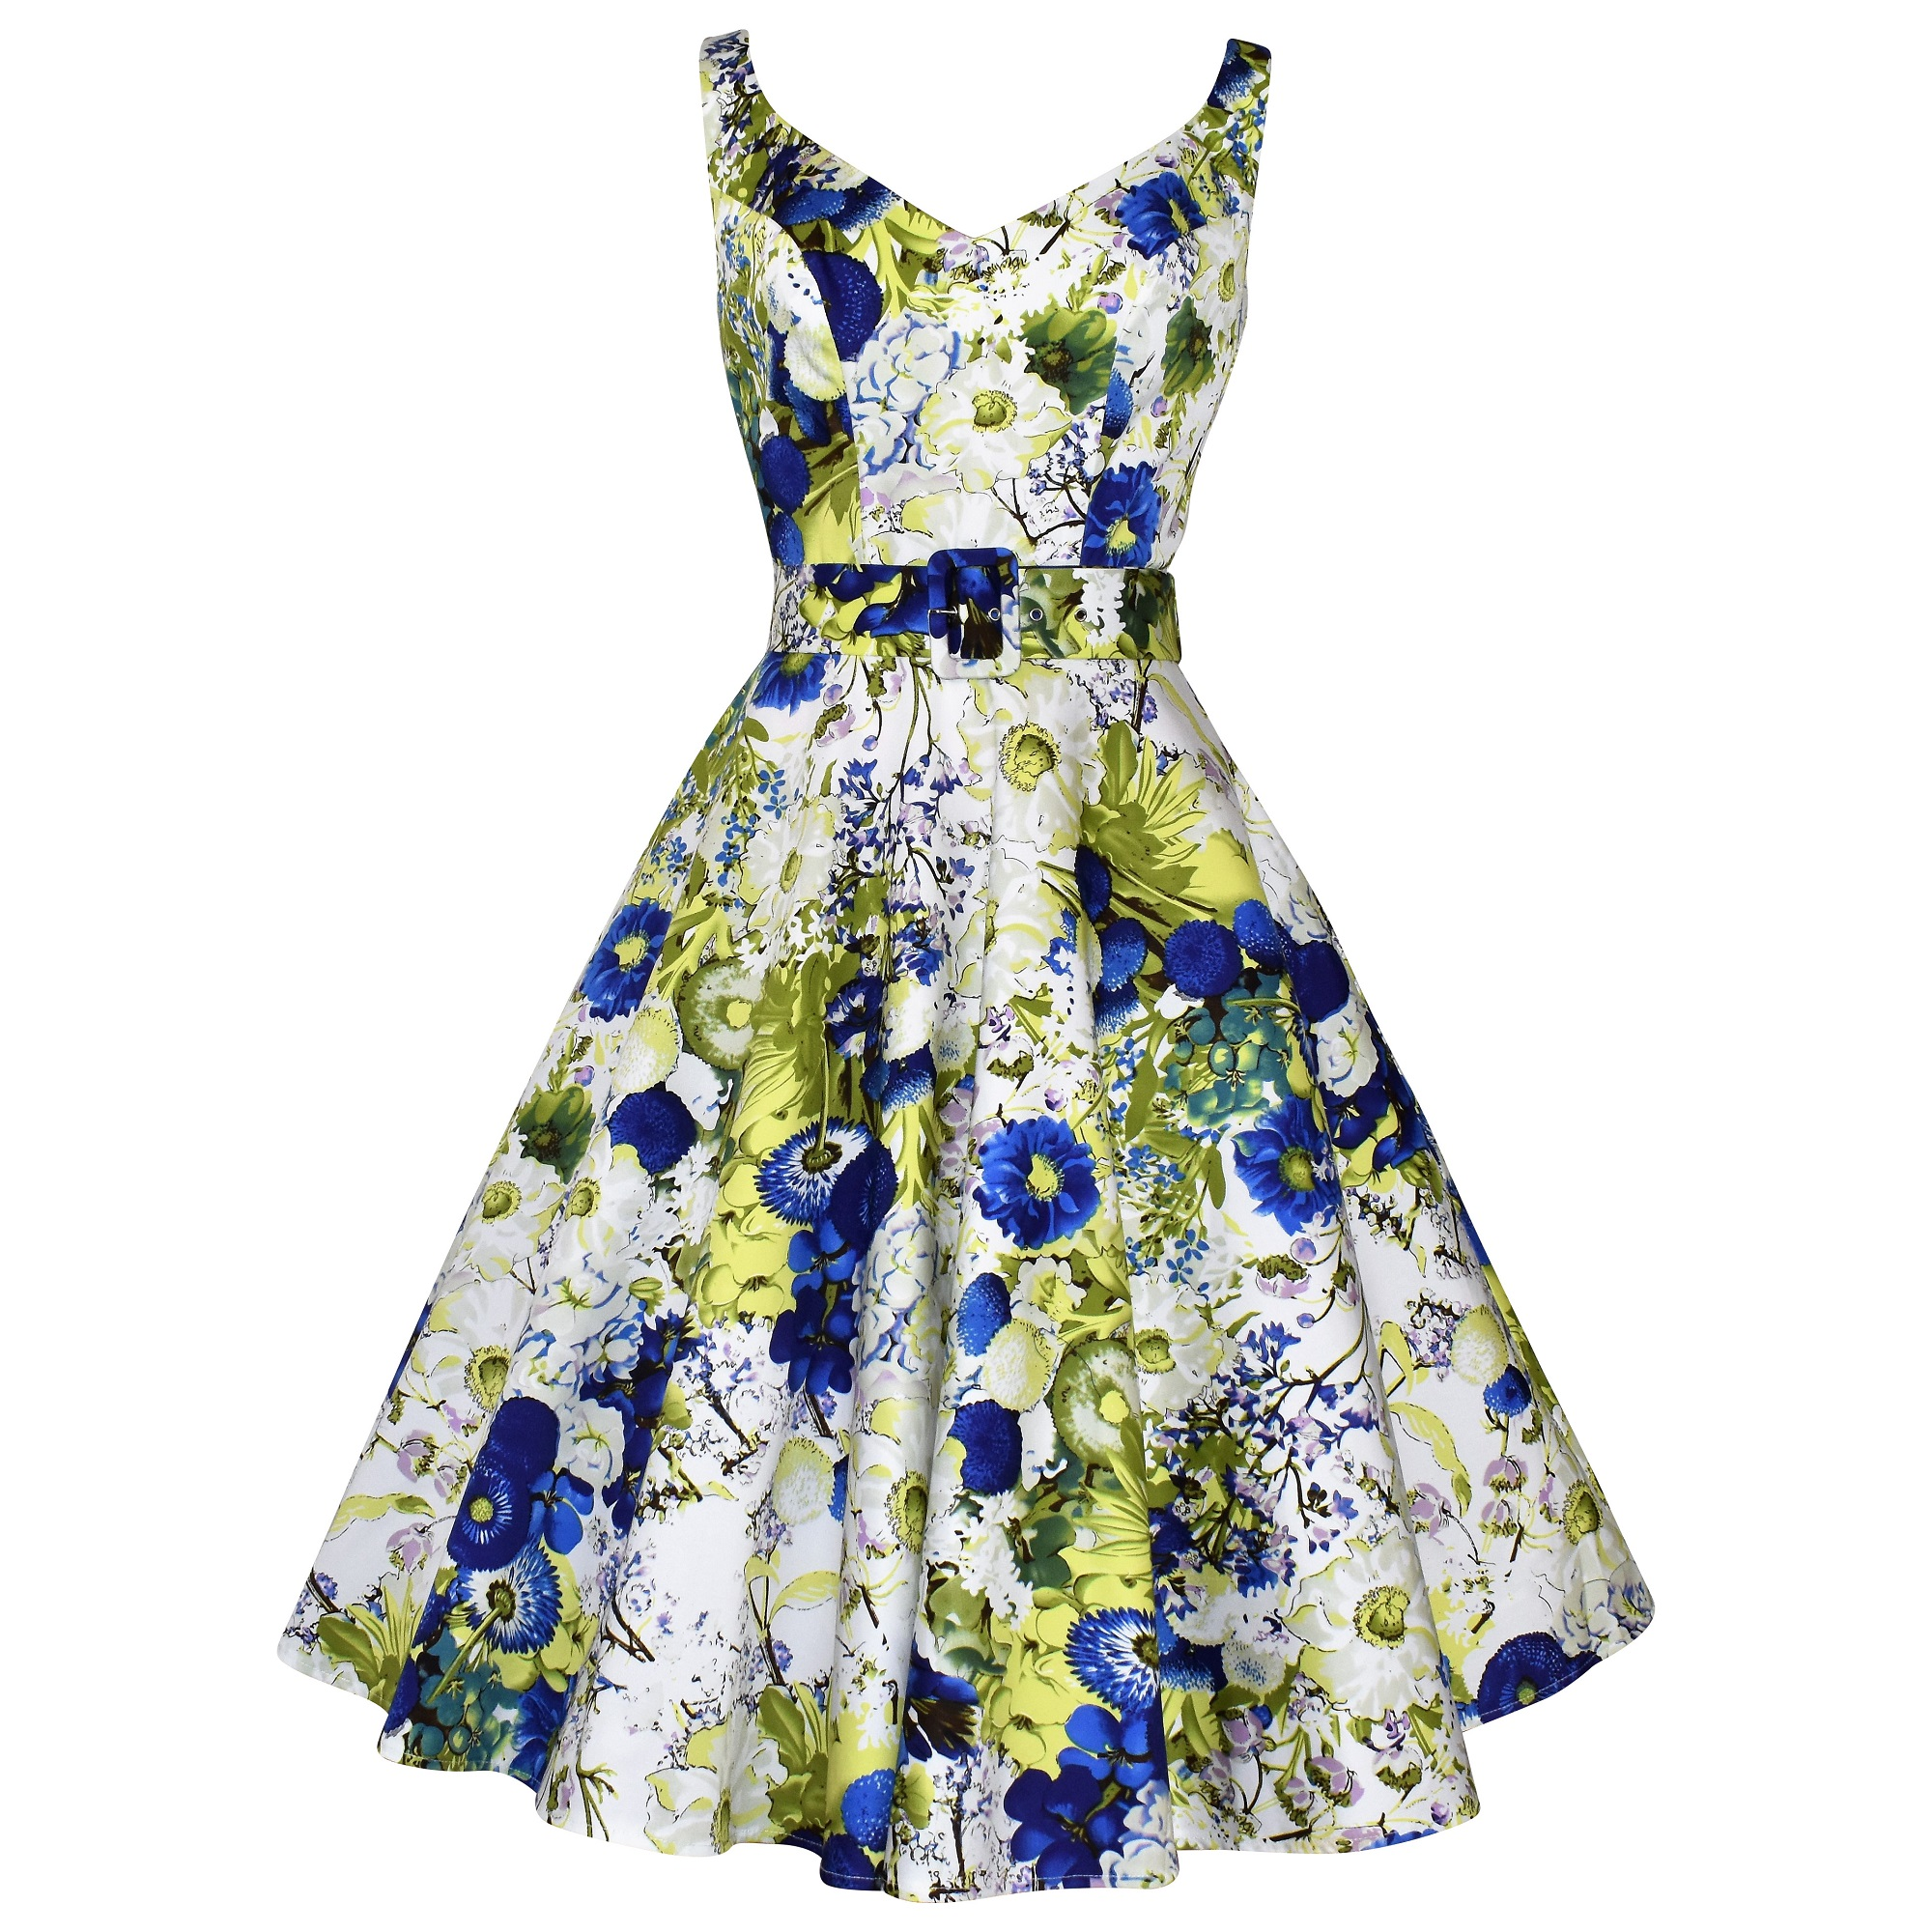 71fe9544f4a Vintage v-neck Swing Dress in Cornflower blue and lime floral print fabric